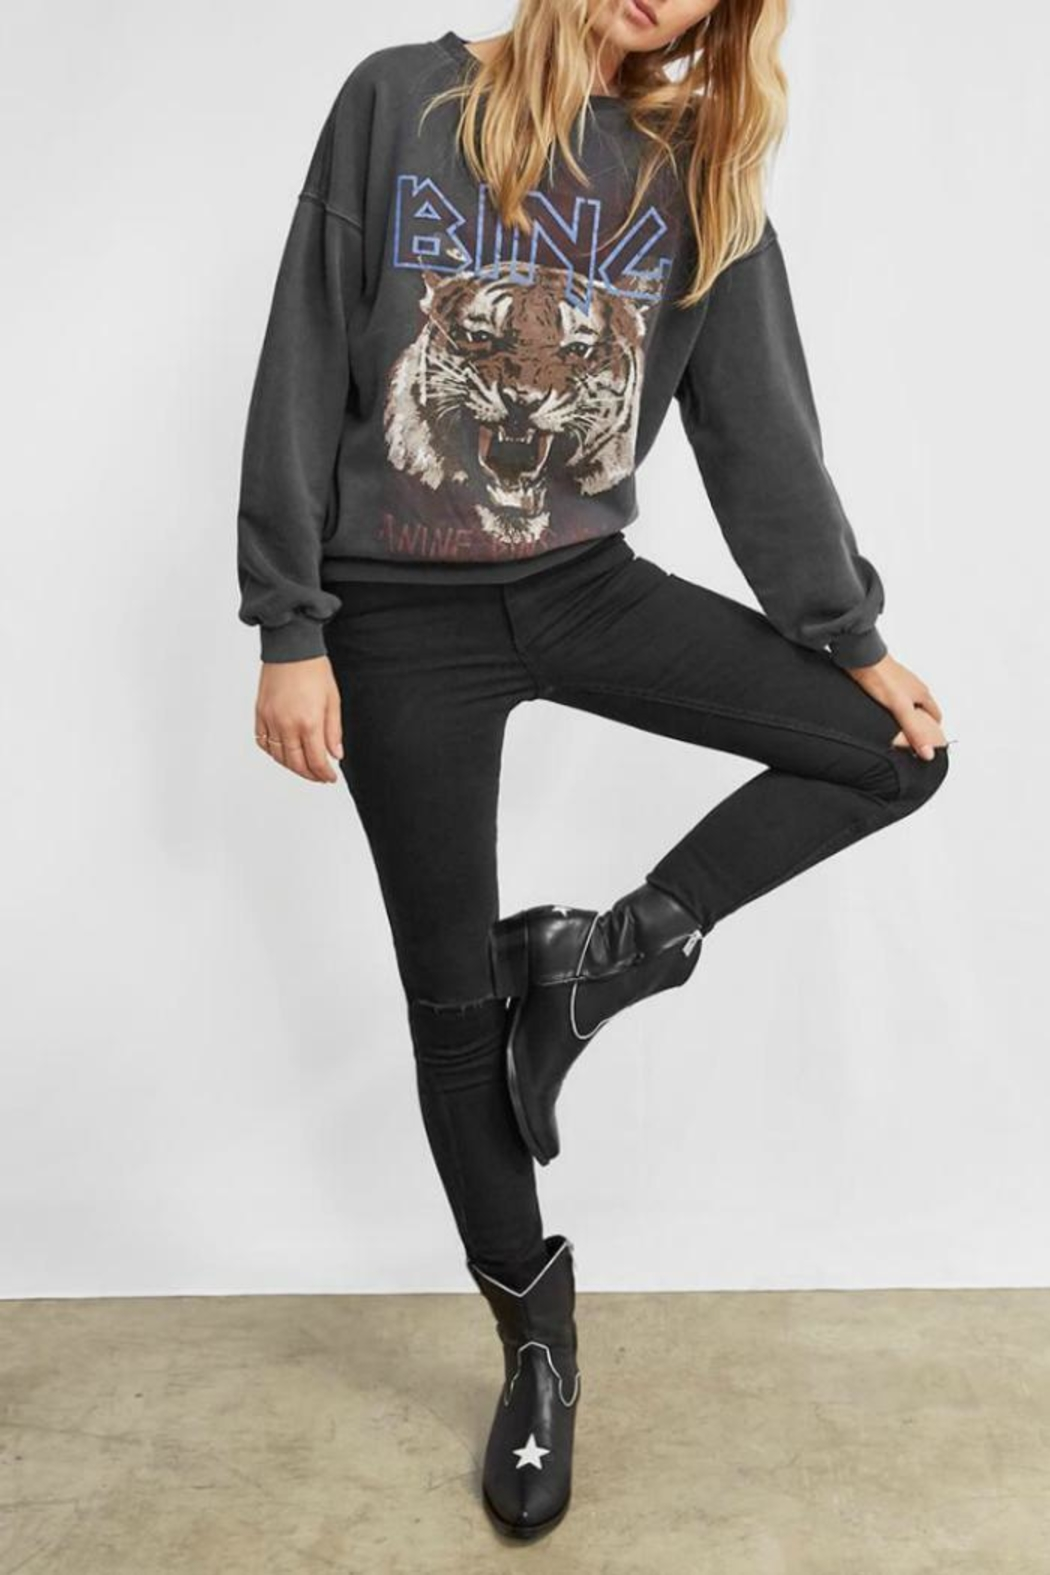 dbc6f14cbb Anine Bing Tiger Sweatshirt from Canada by Era Style Loft — Shoptiques